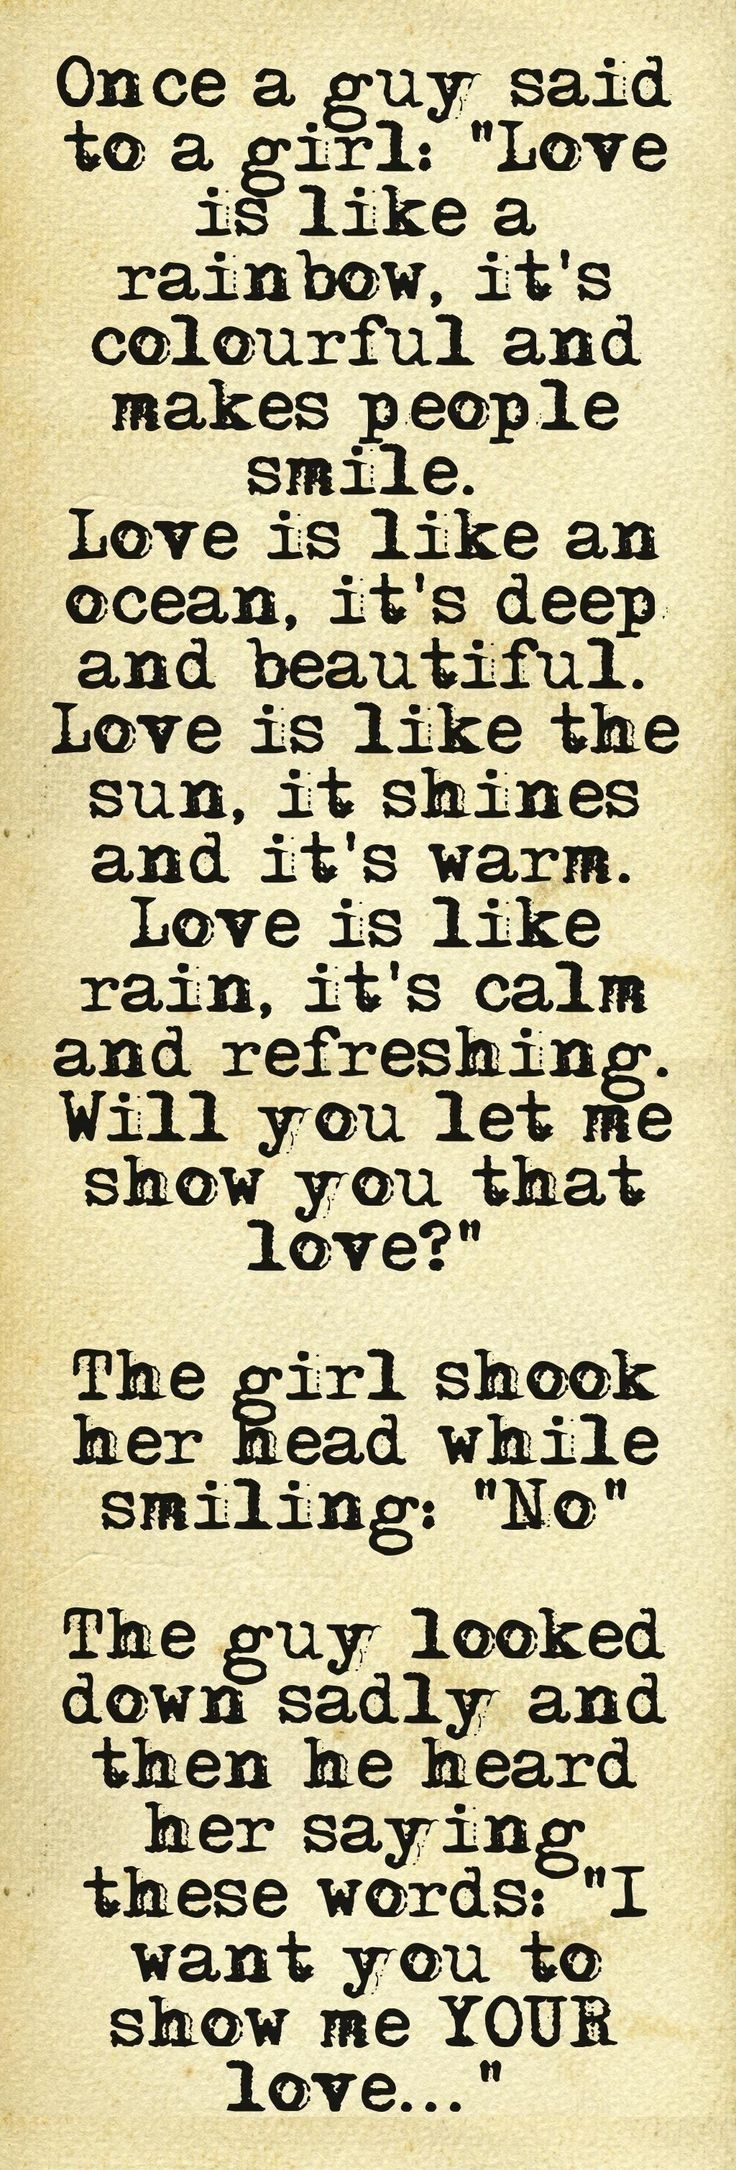 Image result for cute relationship quotes for your boyfriend